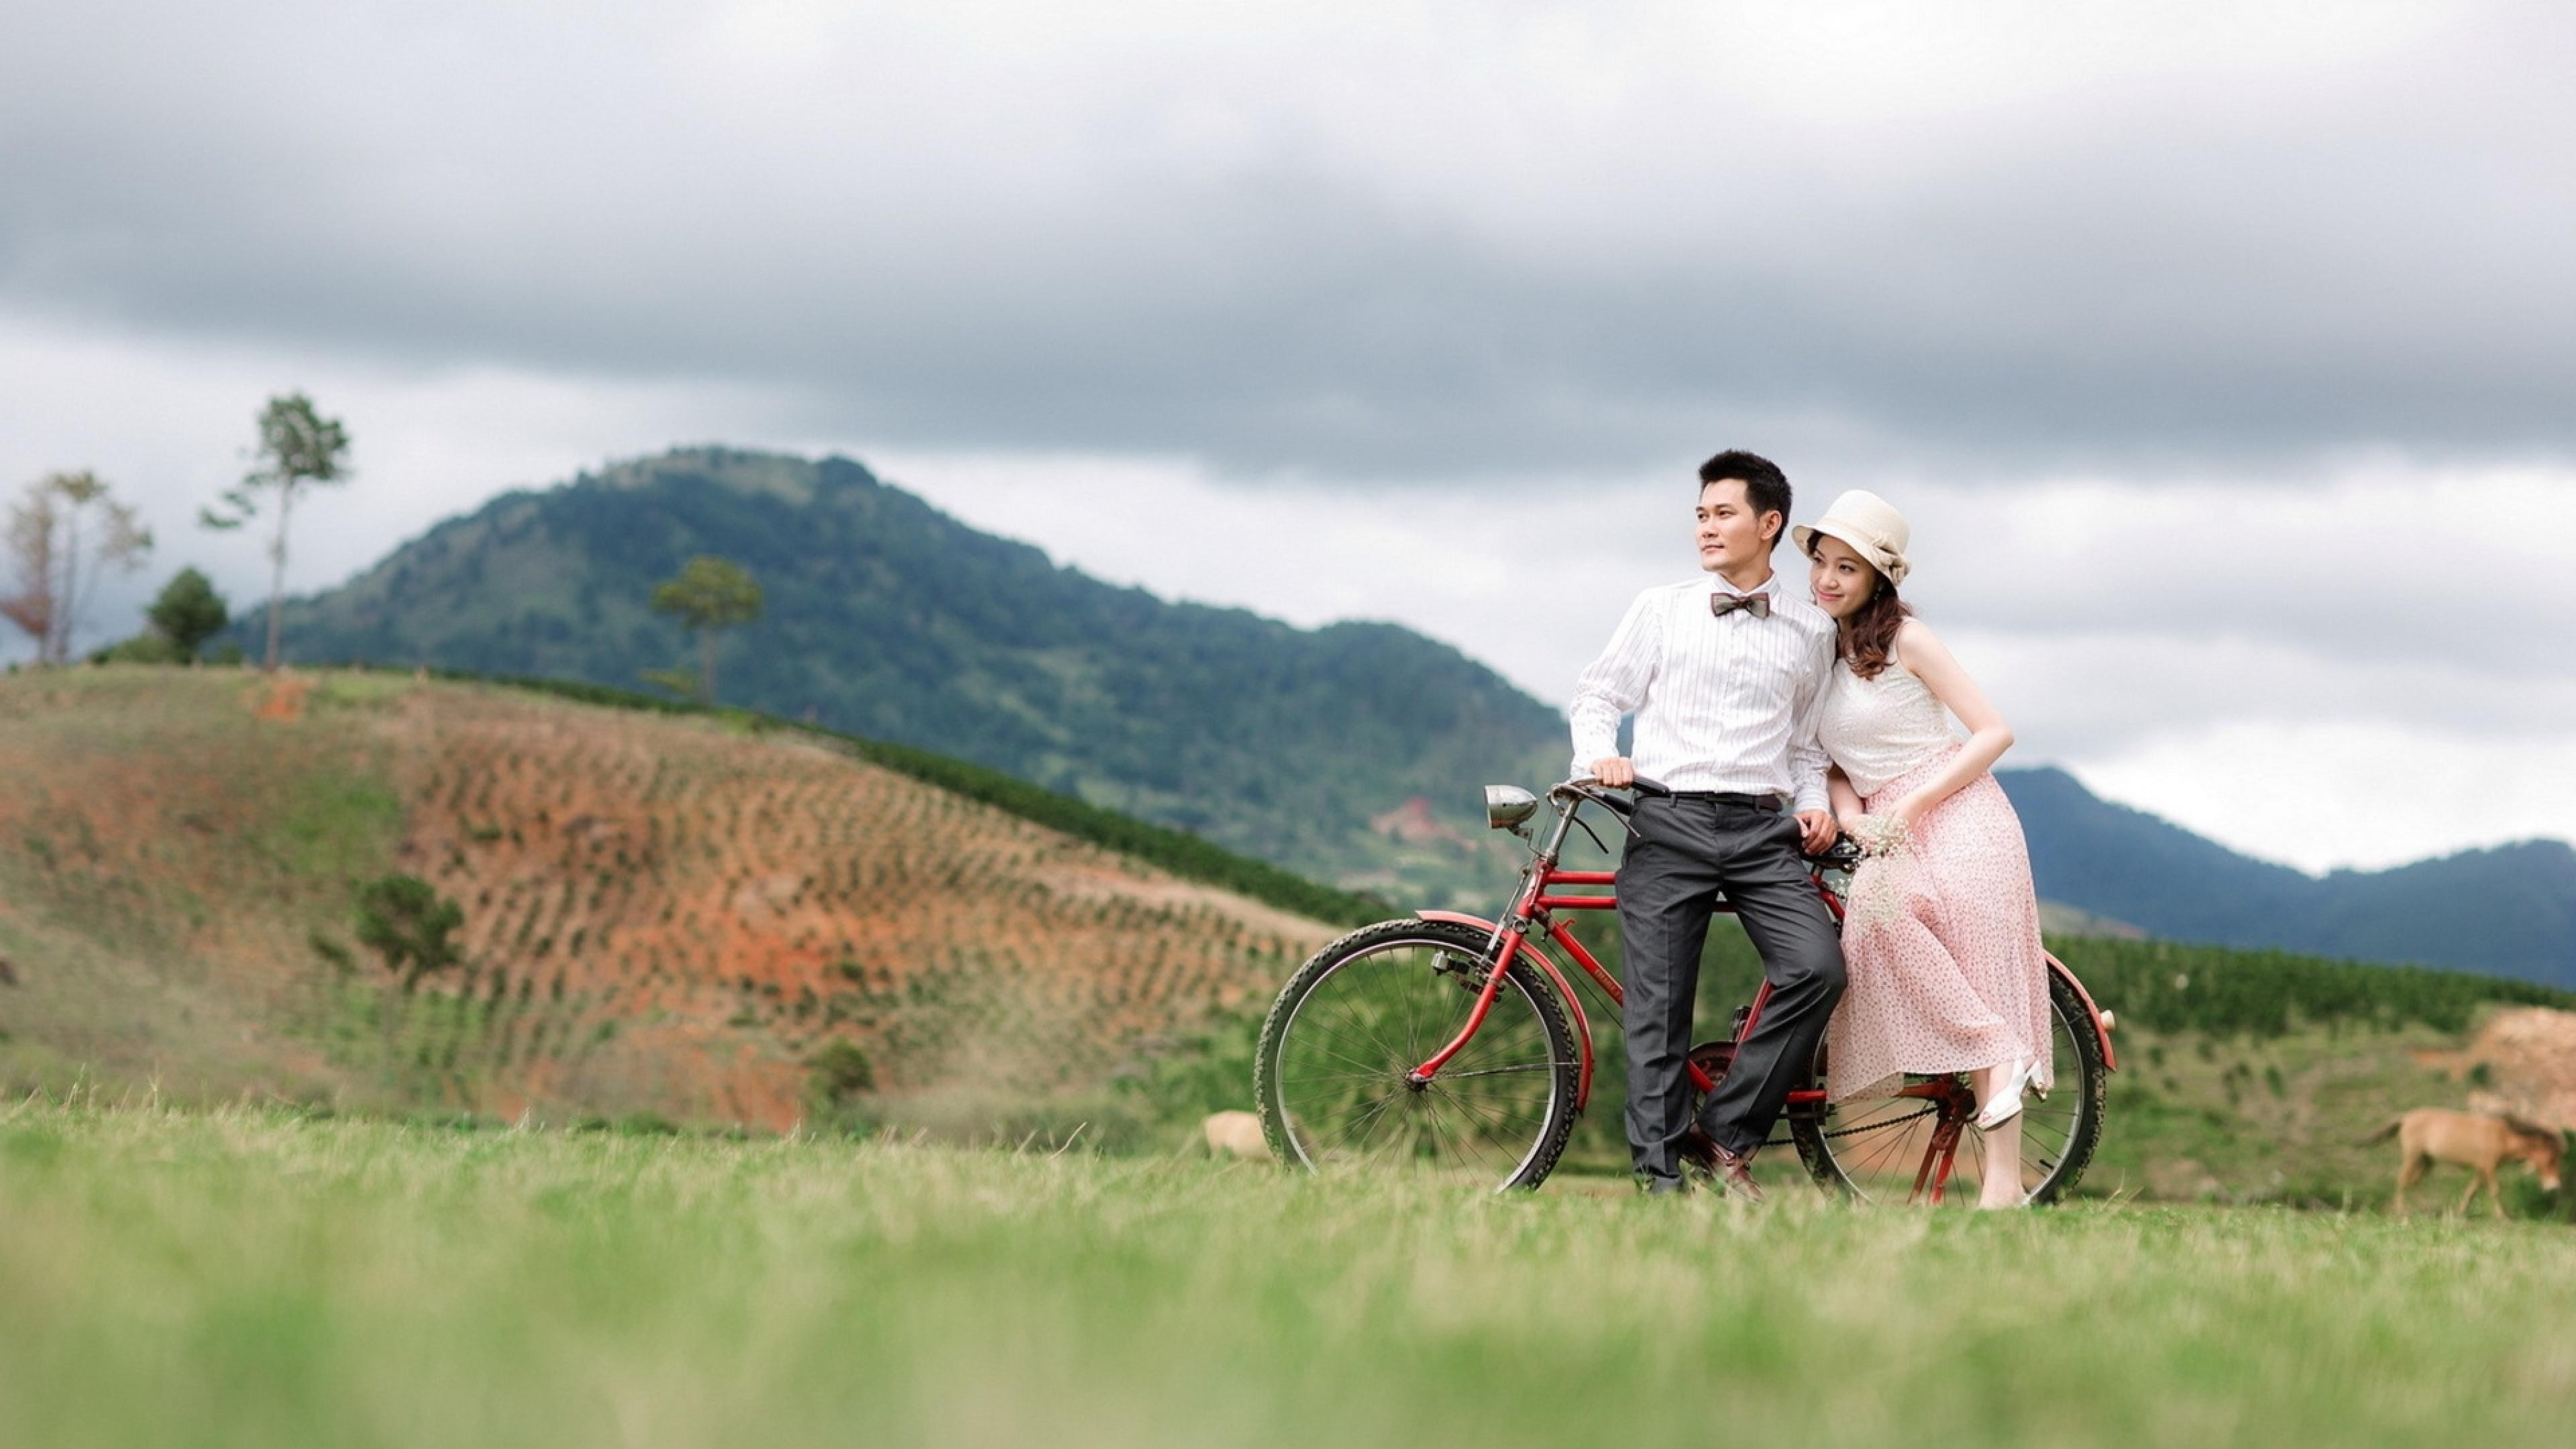 Res: 3840x2160, Love Couple Relax Cycle Nature